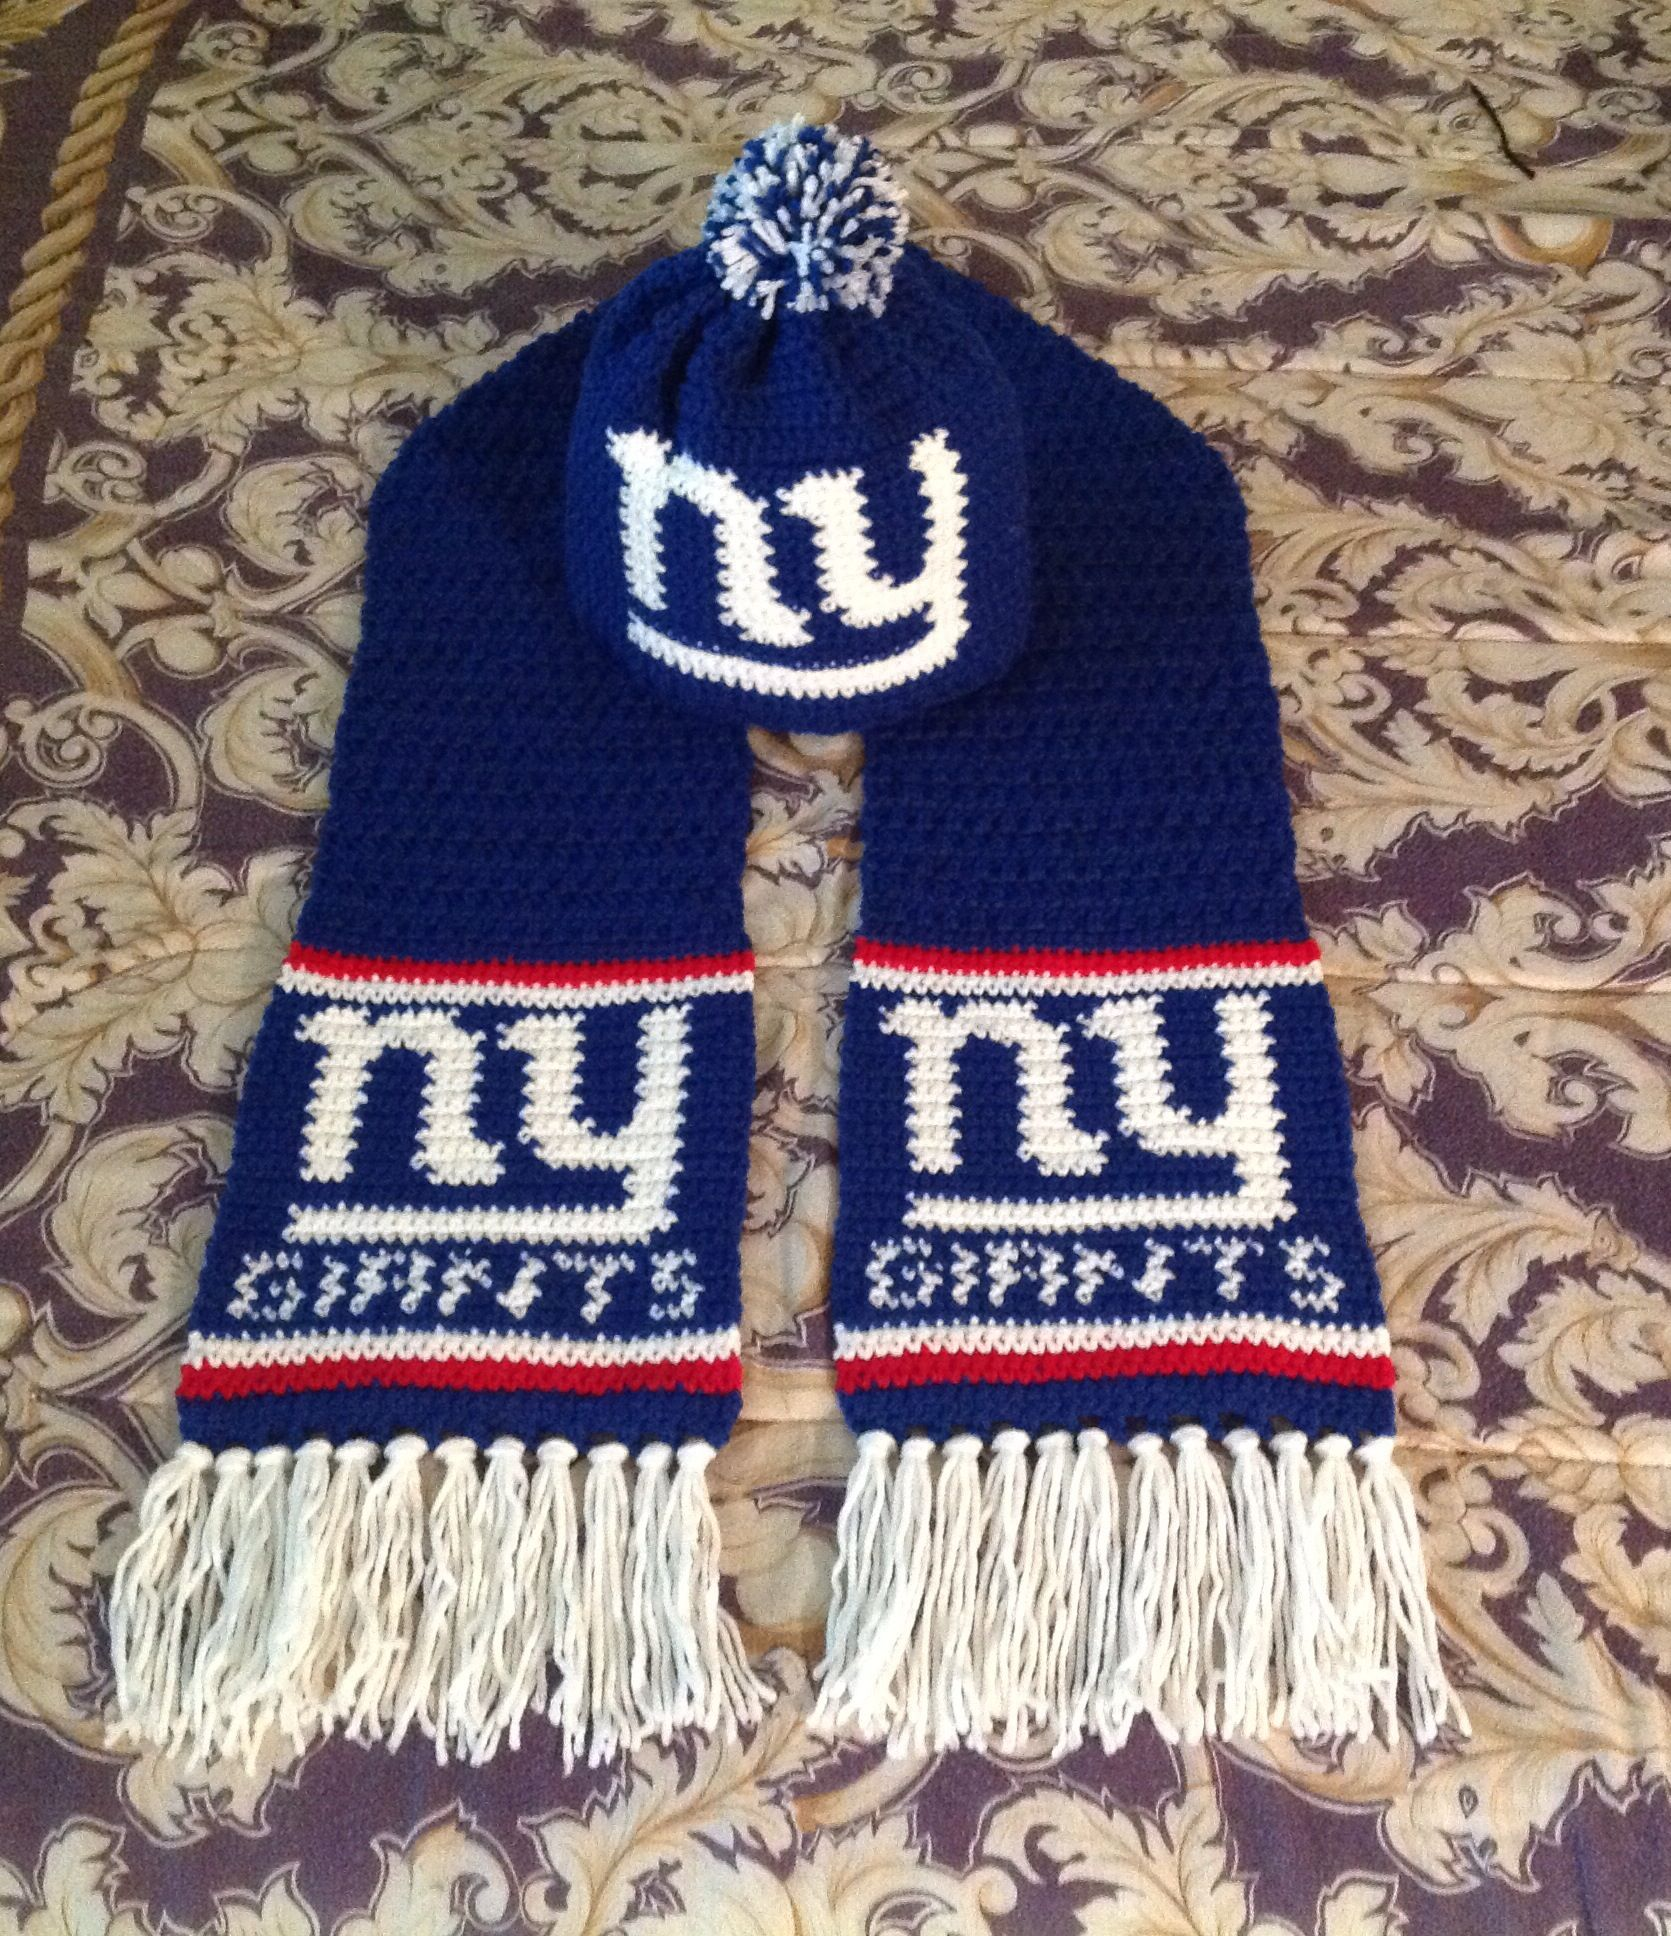 ea8d6dd0e2b New York Giants crochet hat and scarf